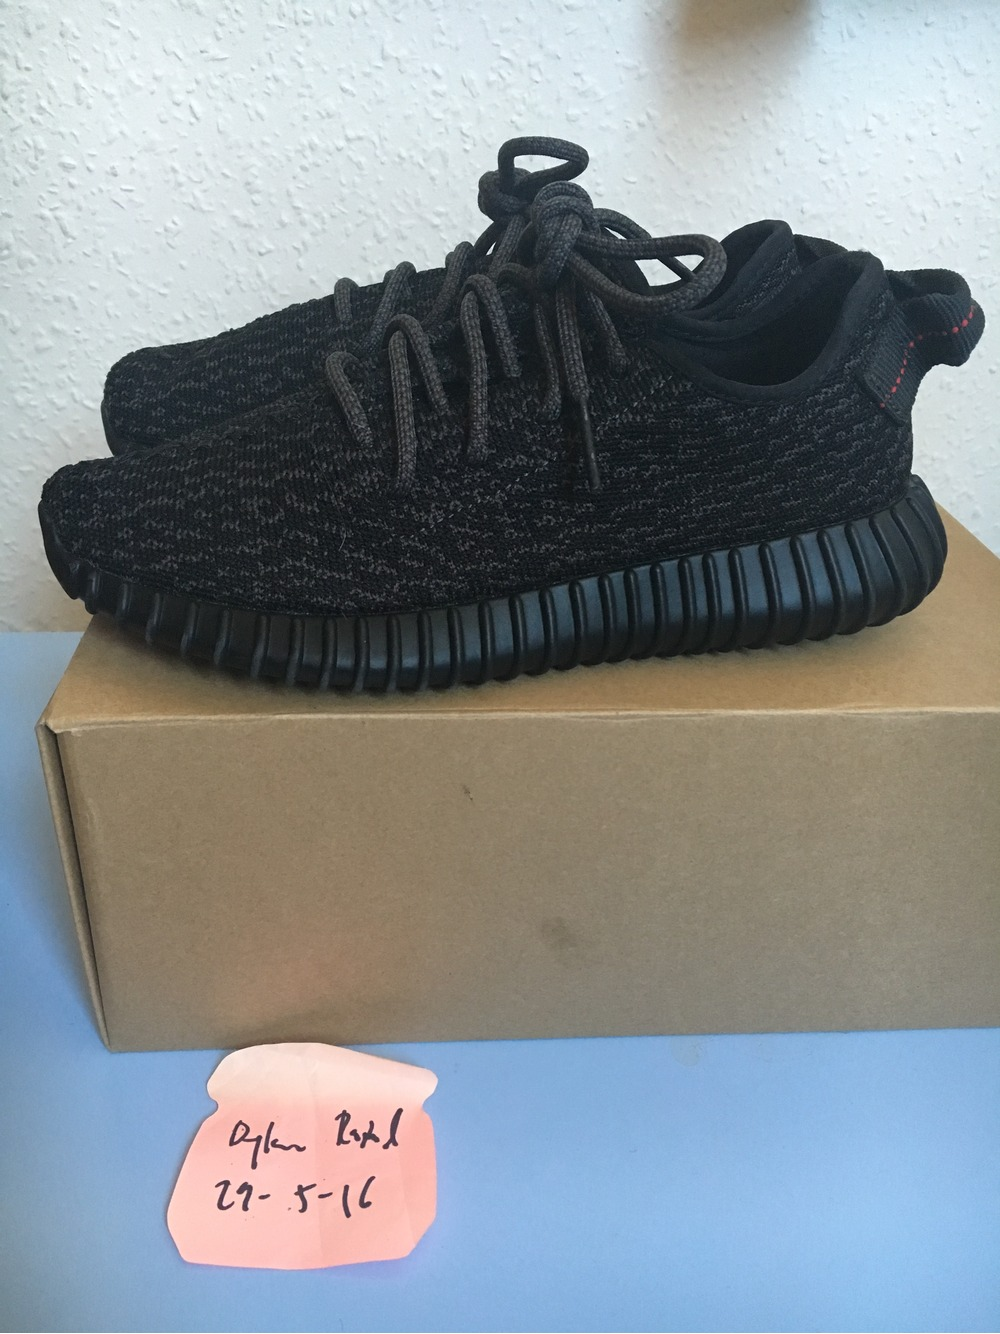 e97ca355fa03e ... closeout adidas yeezy boost 350 size uk 4.5 us 5 37 1 3 photo 2 0ddd3